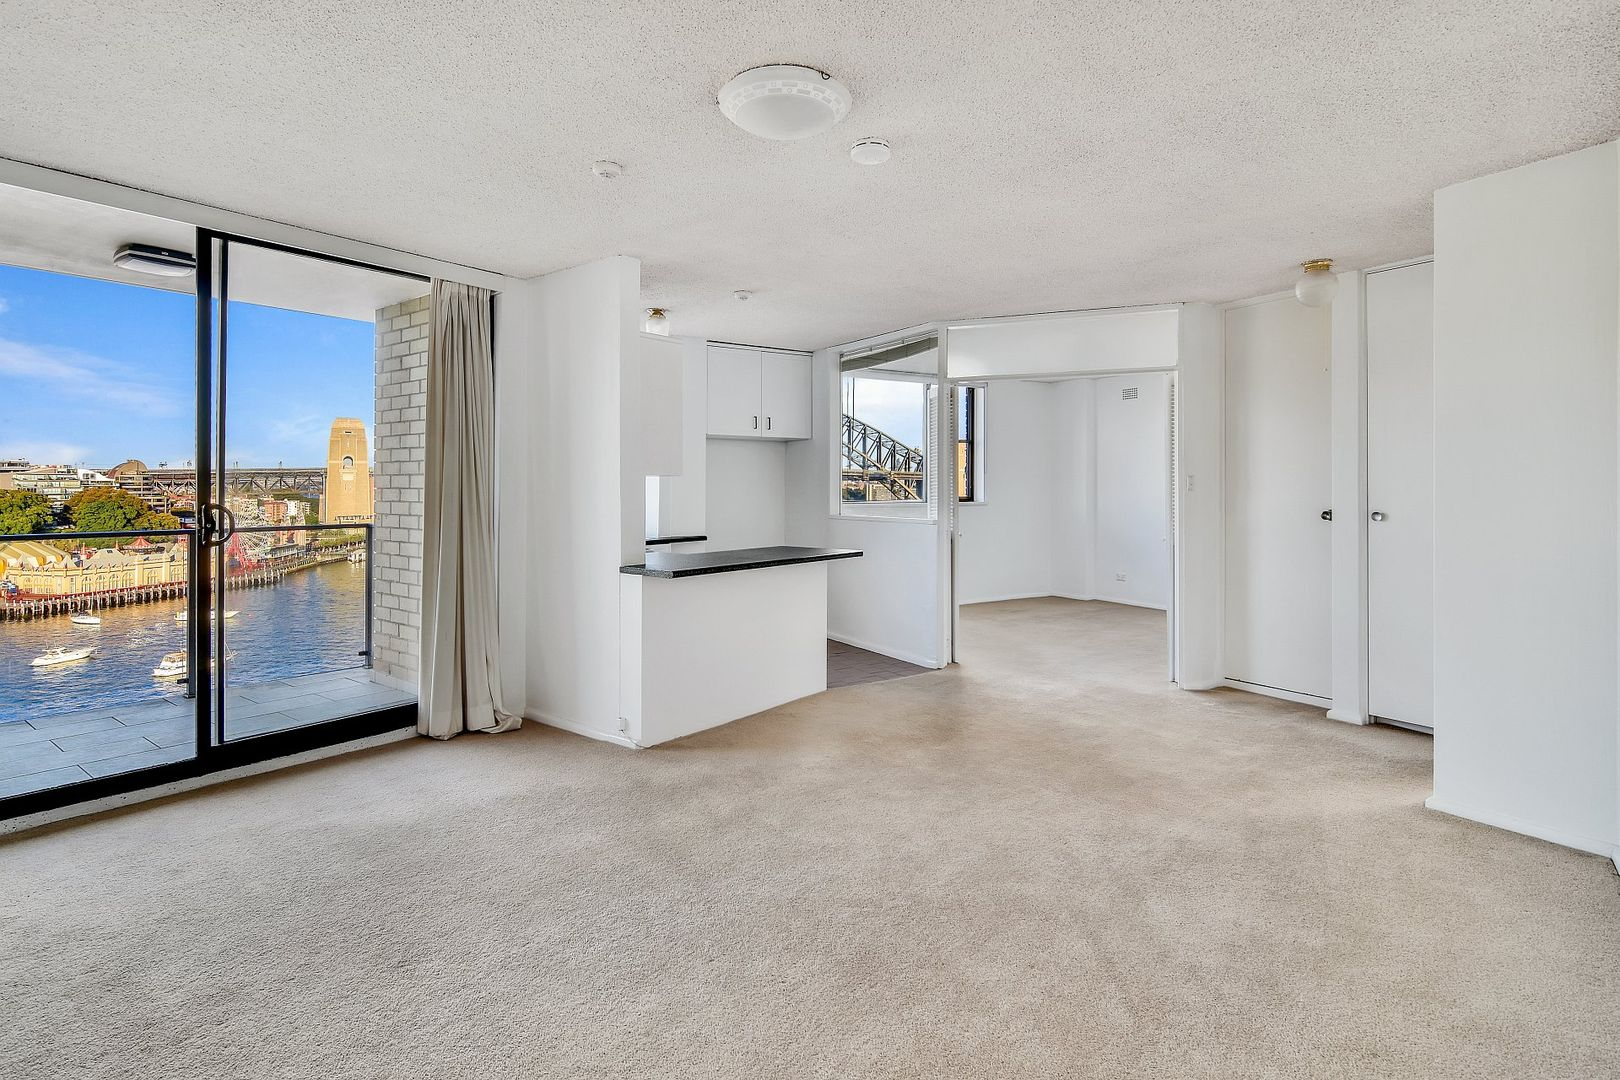 51/21 East Crescent Street, Mcmahons Point NSW 2060, Image 2